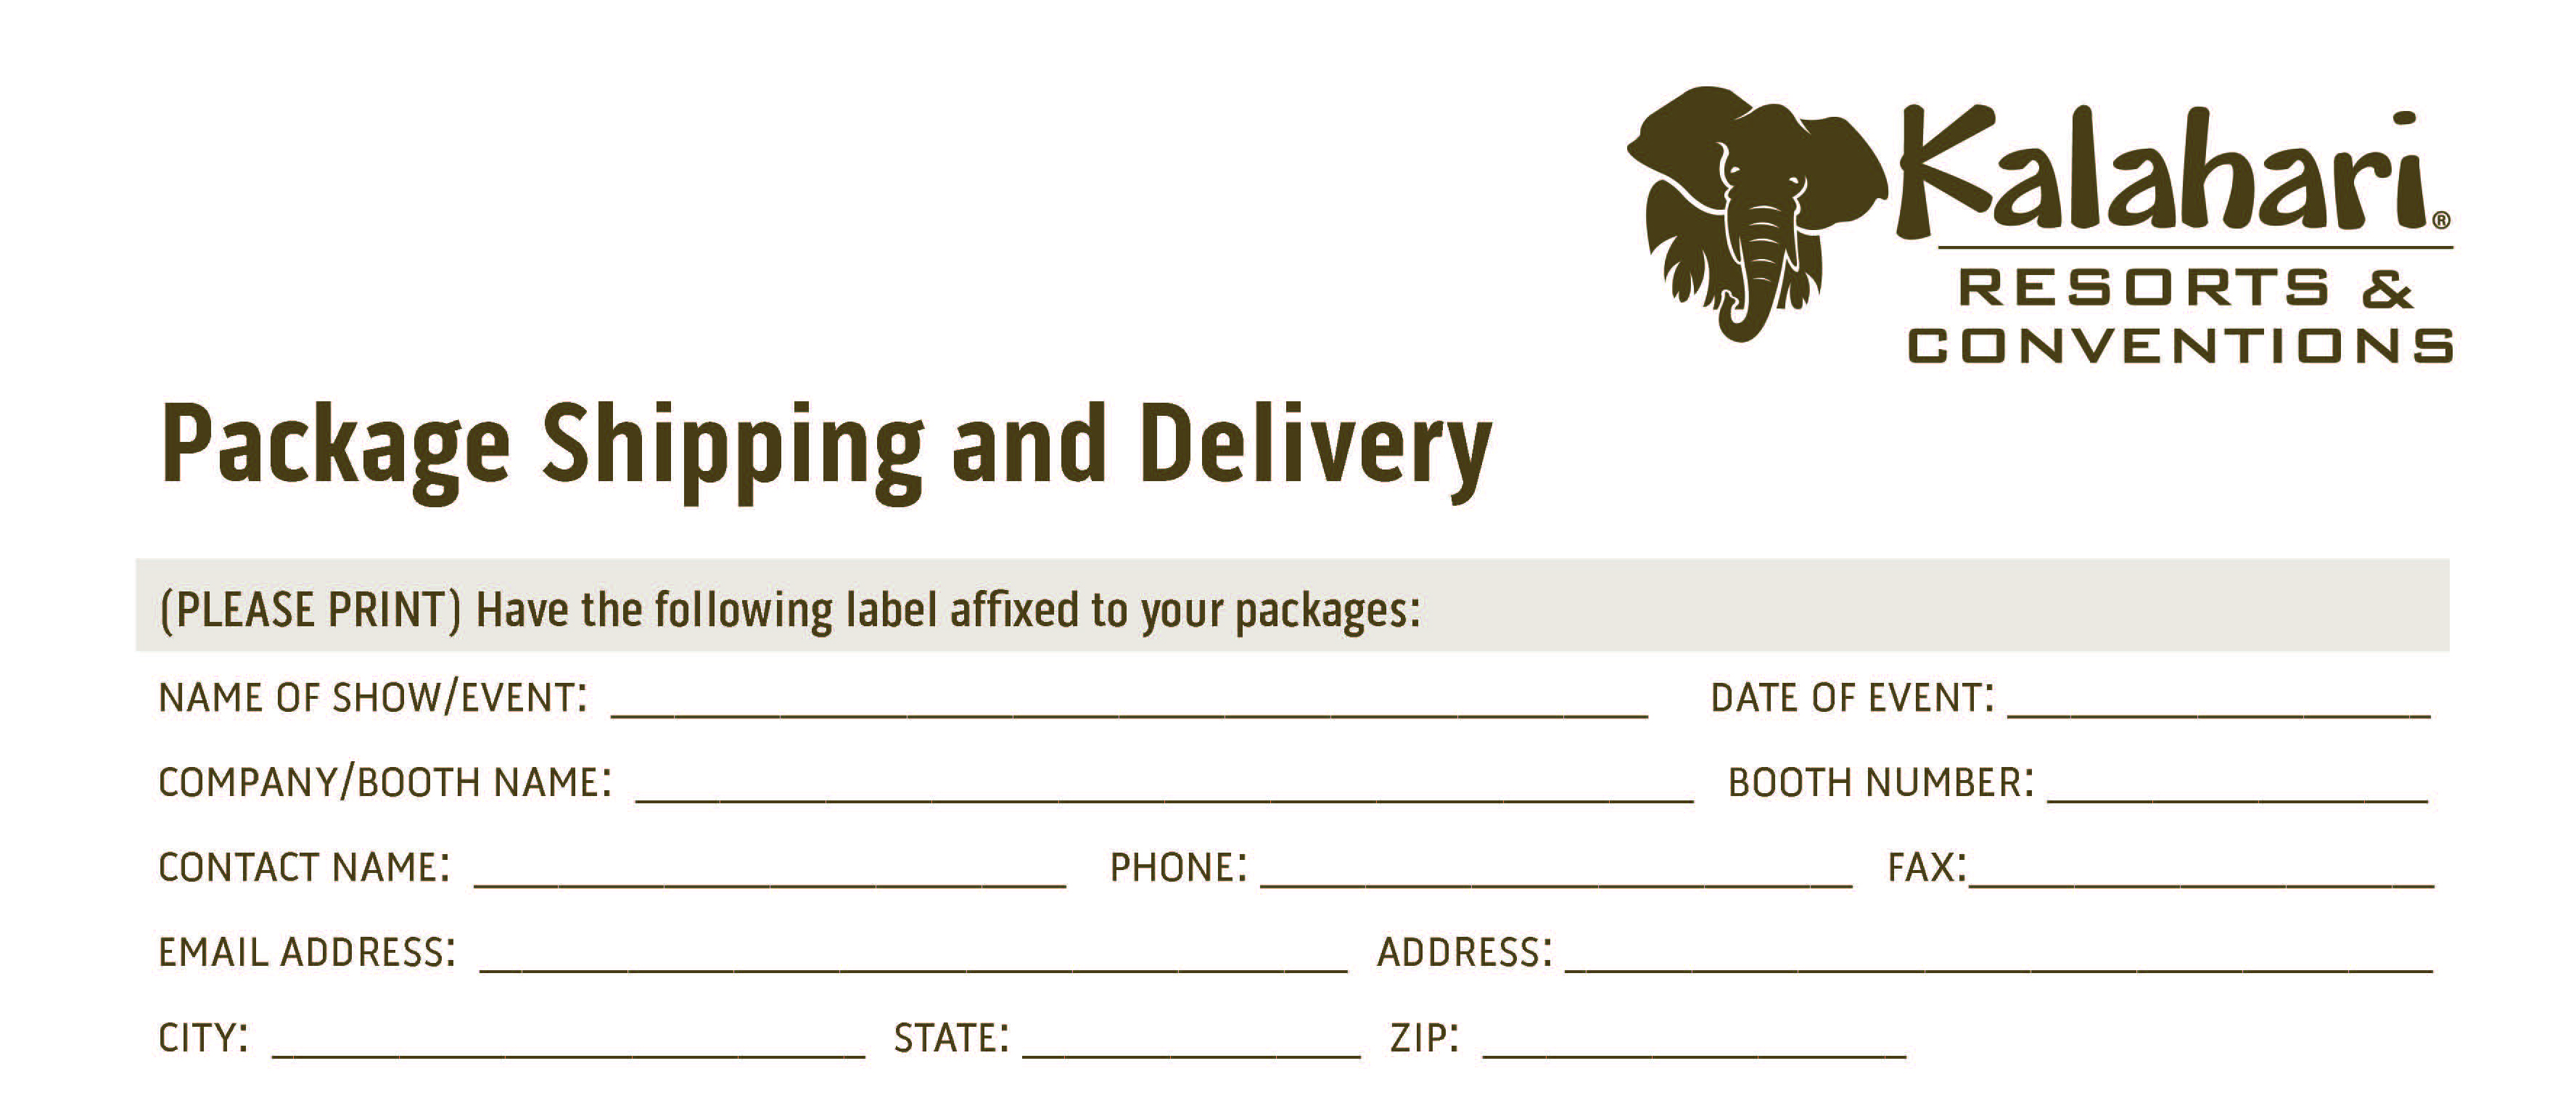 2022 Kalahari shipping delivery form TOP SECTION